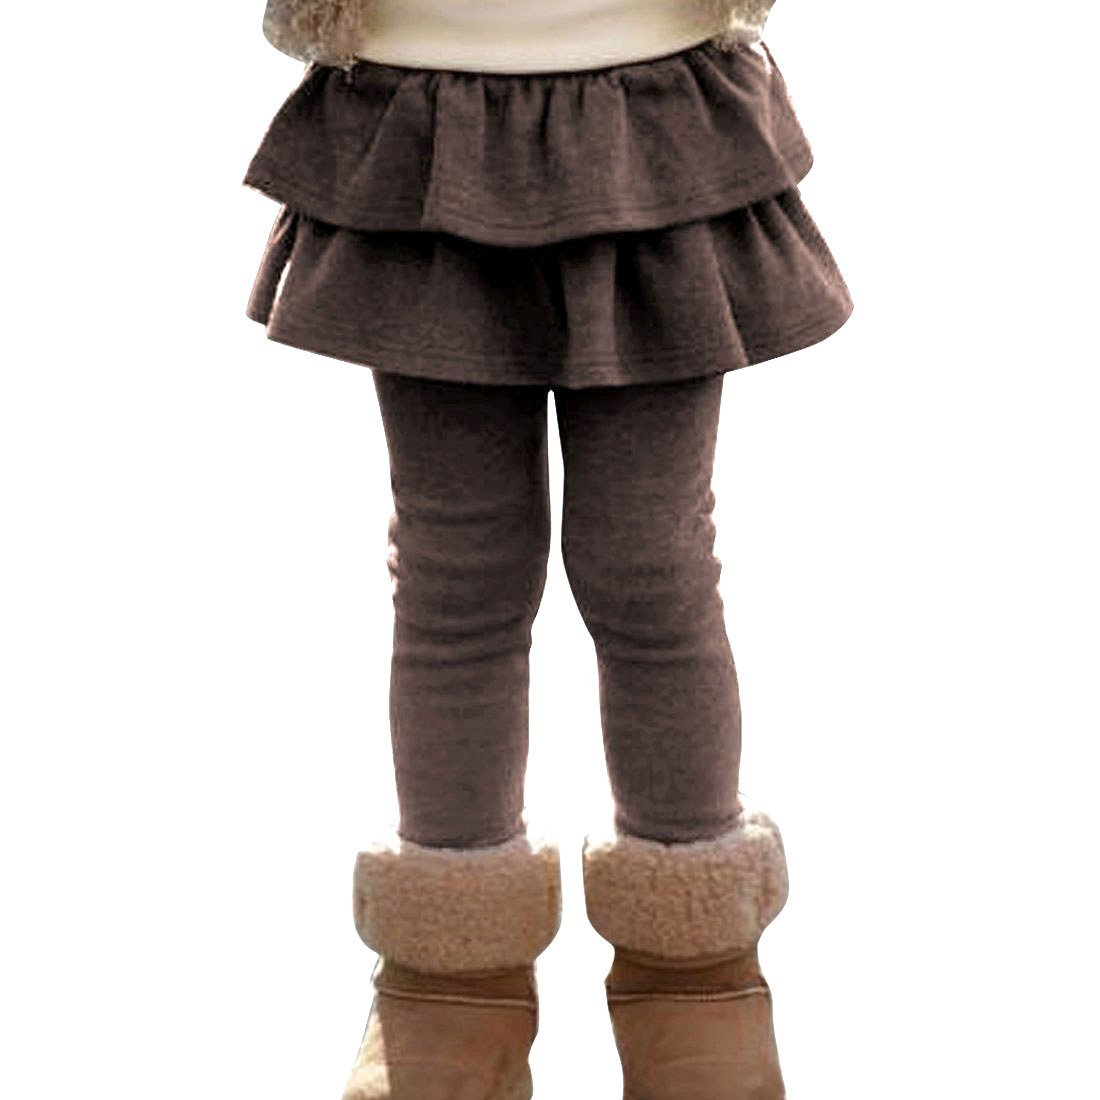 EGELEXY Girls Cute Cotton Skirted Tutu Leggings 6-7Years Coffee